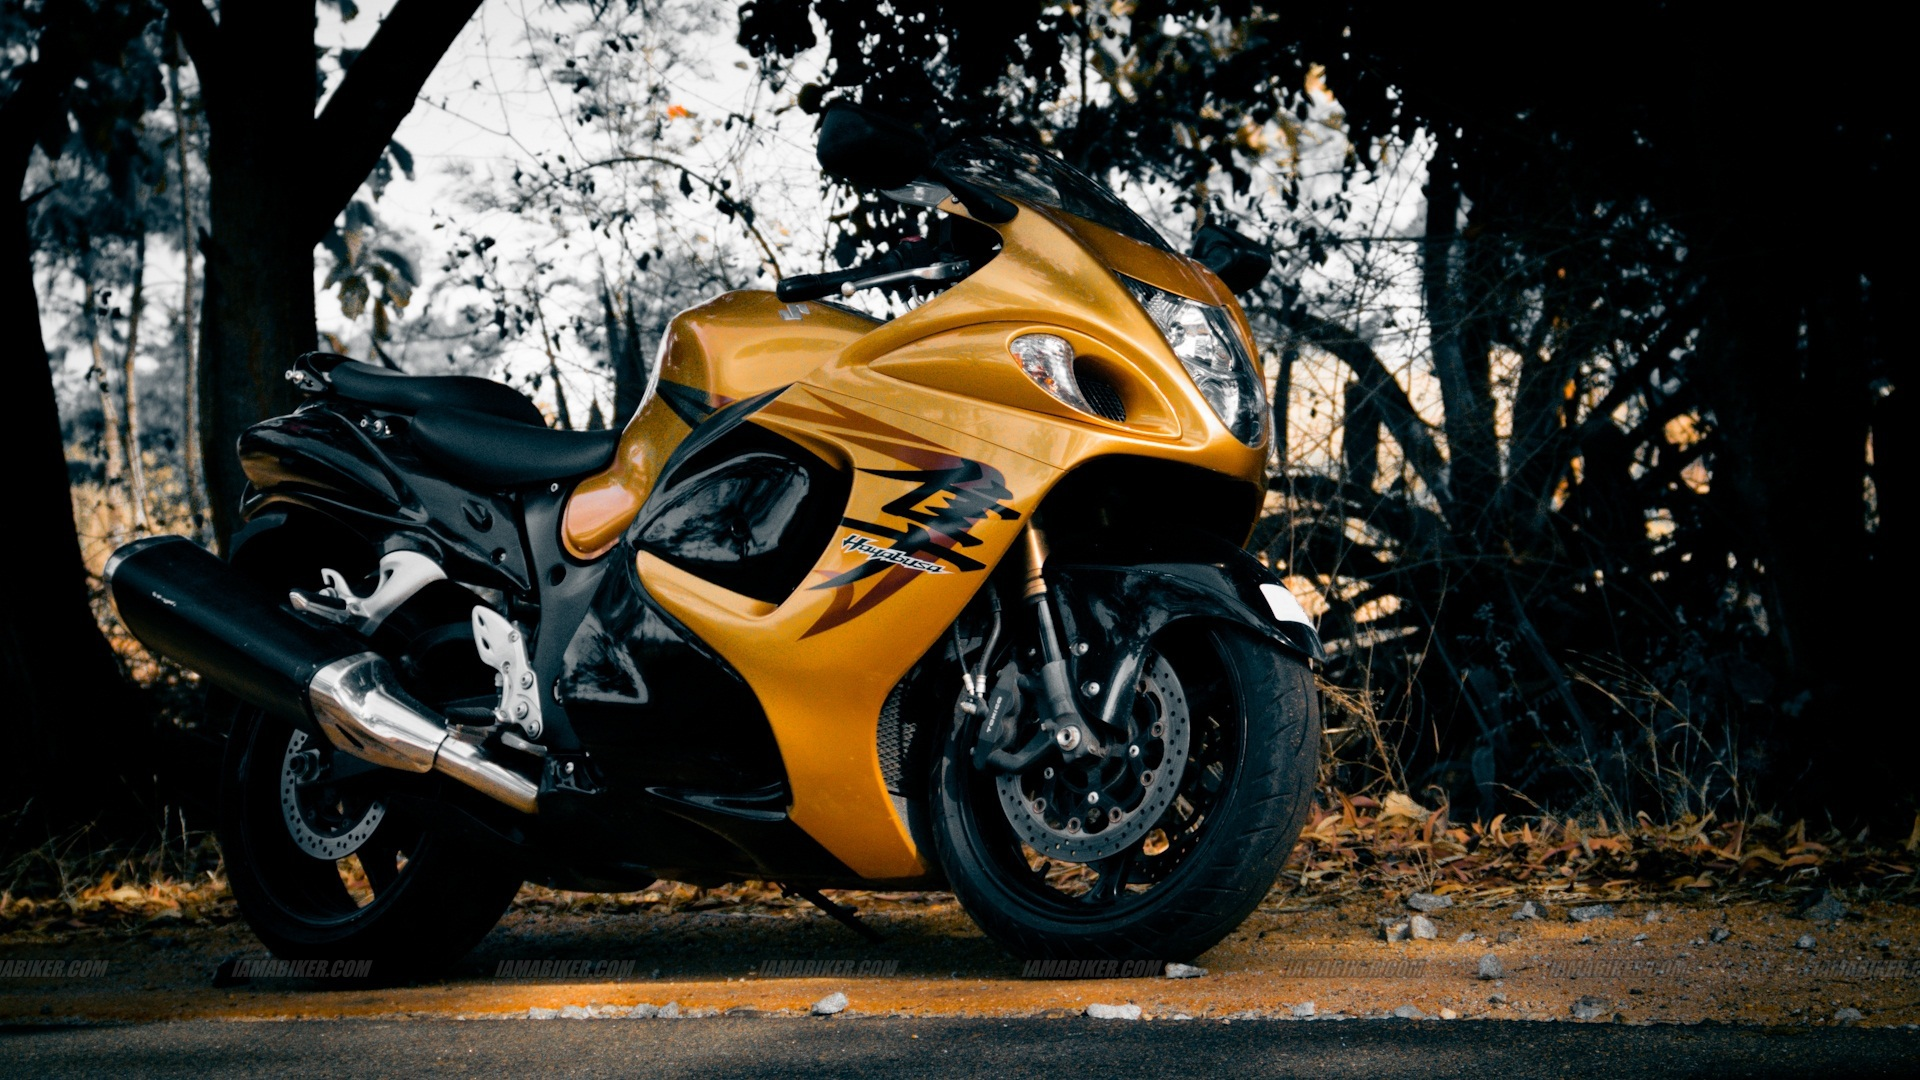 Suzuki Hayabusa Wallpapers Images Photos Pictures Backgrounds 1920x1080